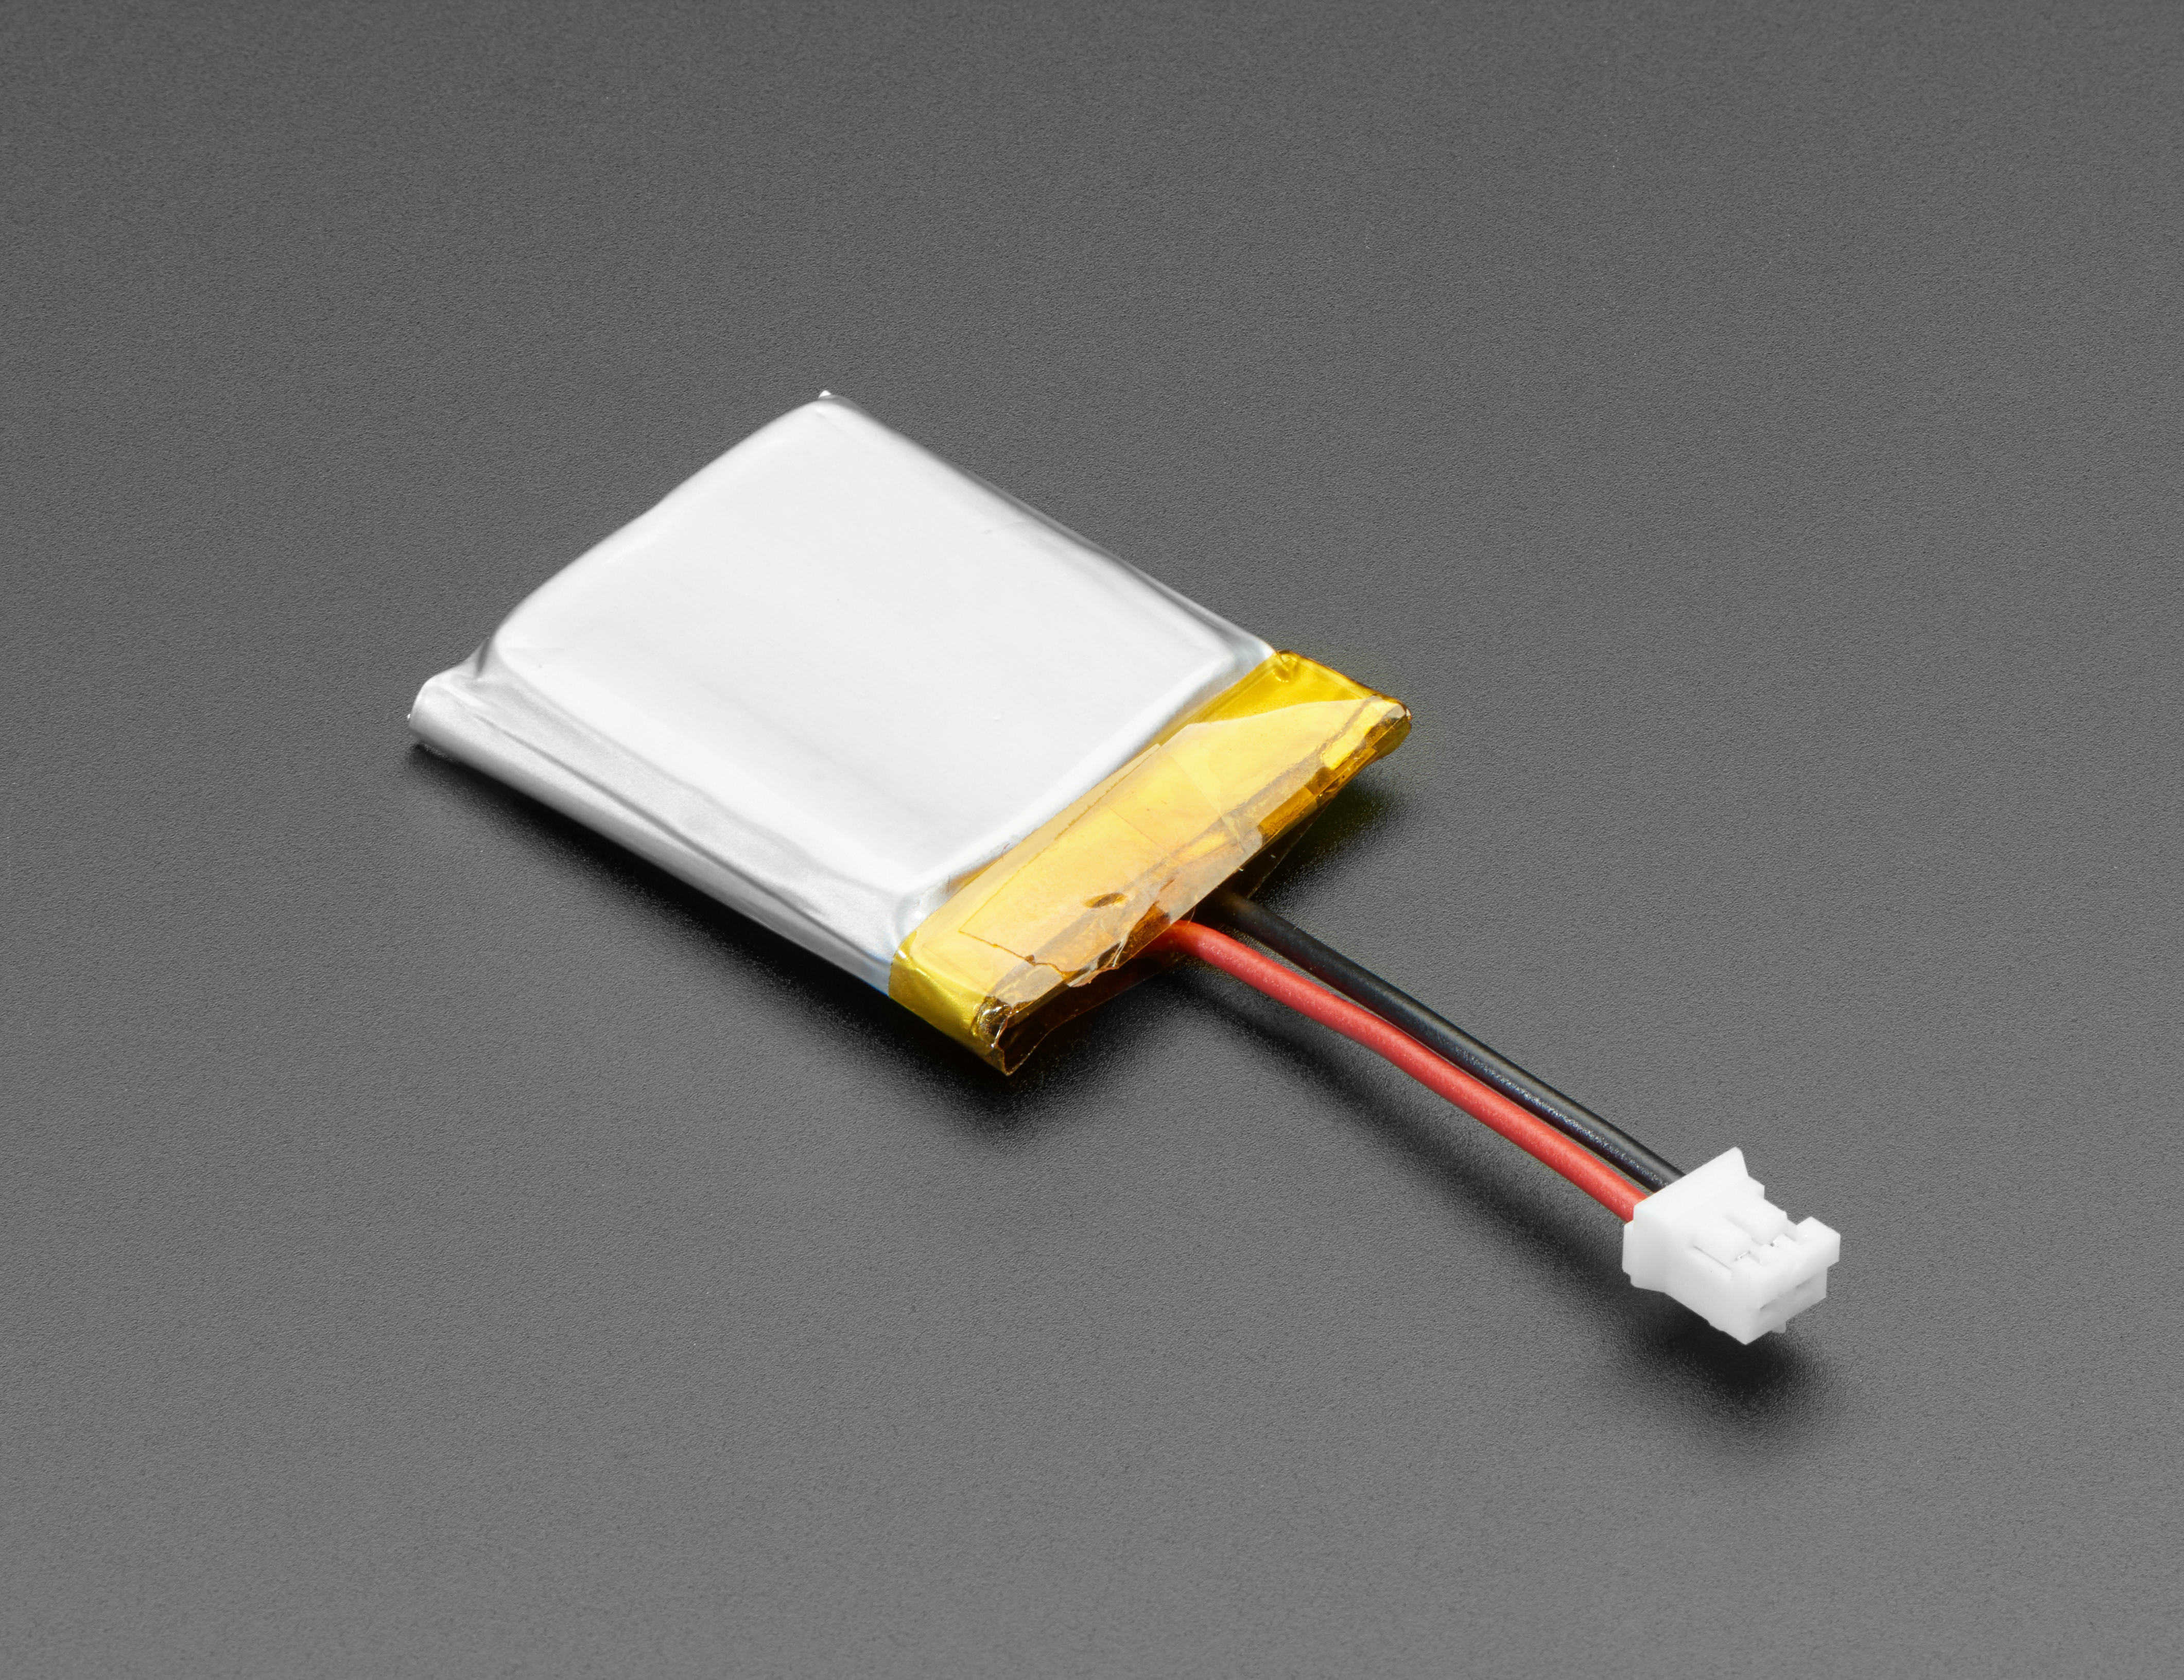 adabox_Lithium_Ion_Polymer_Battery_with_Short_Cable_-_3.7V_350mAh.jpg